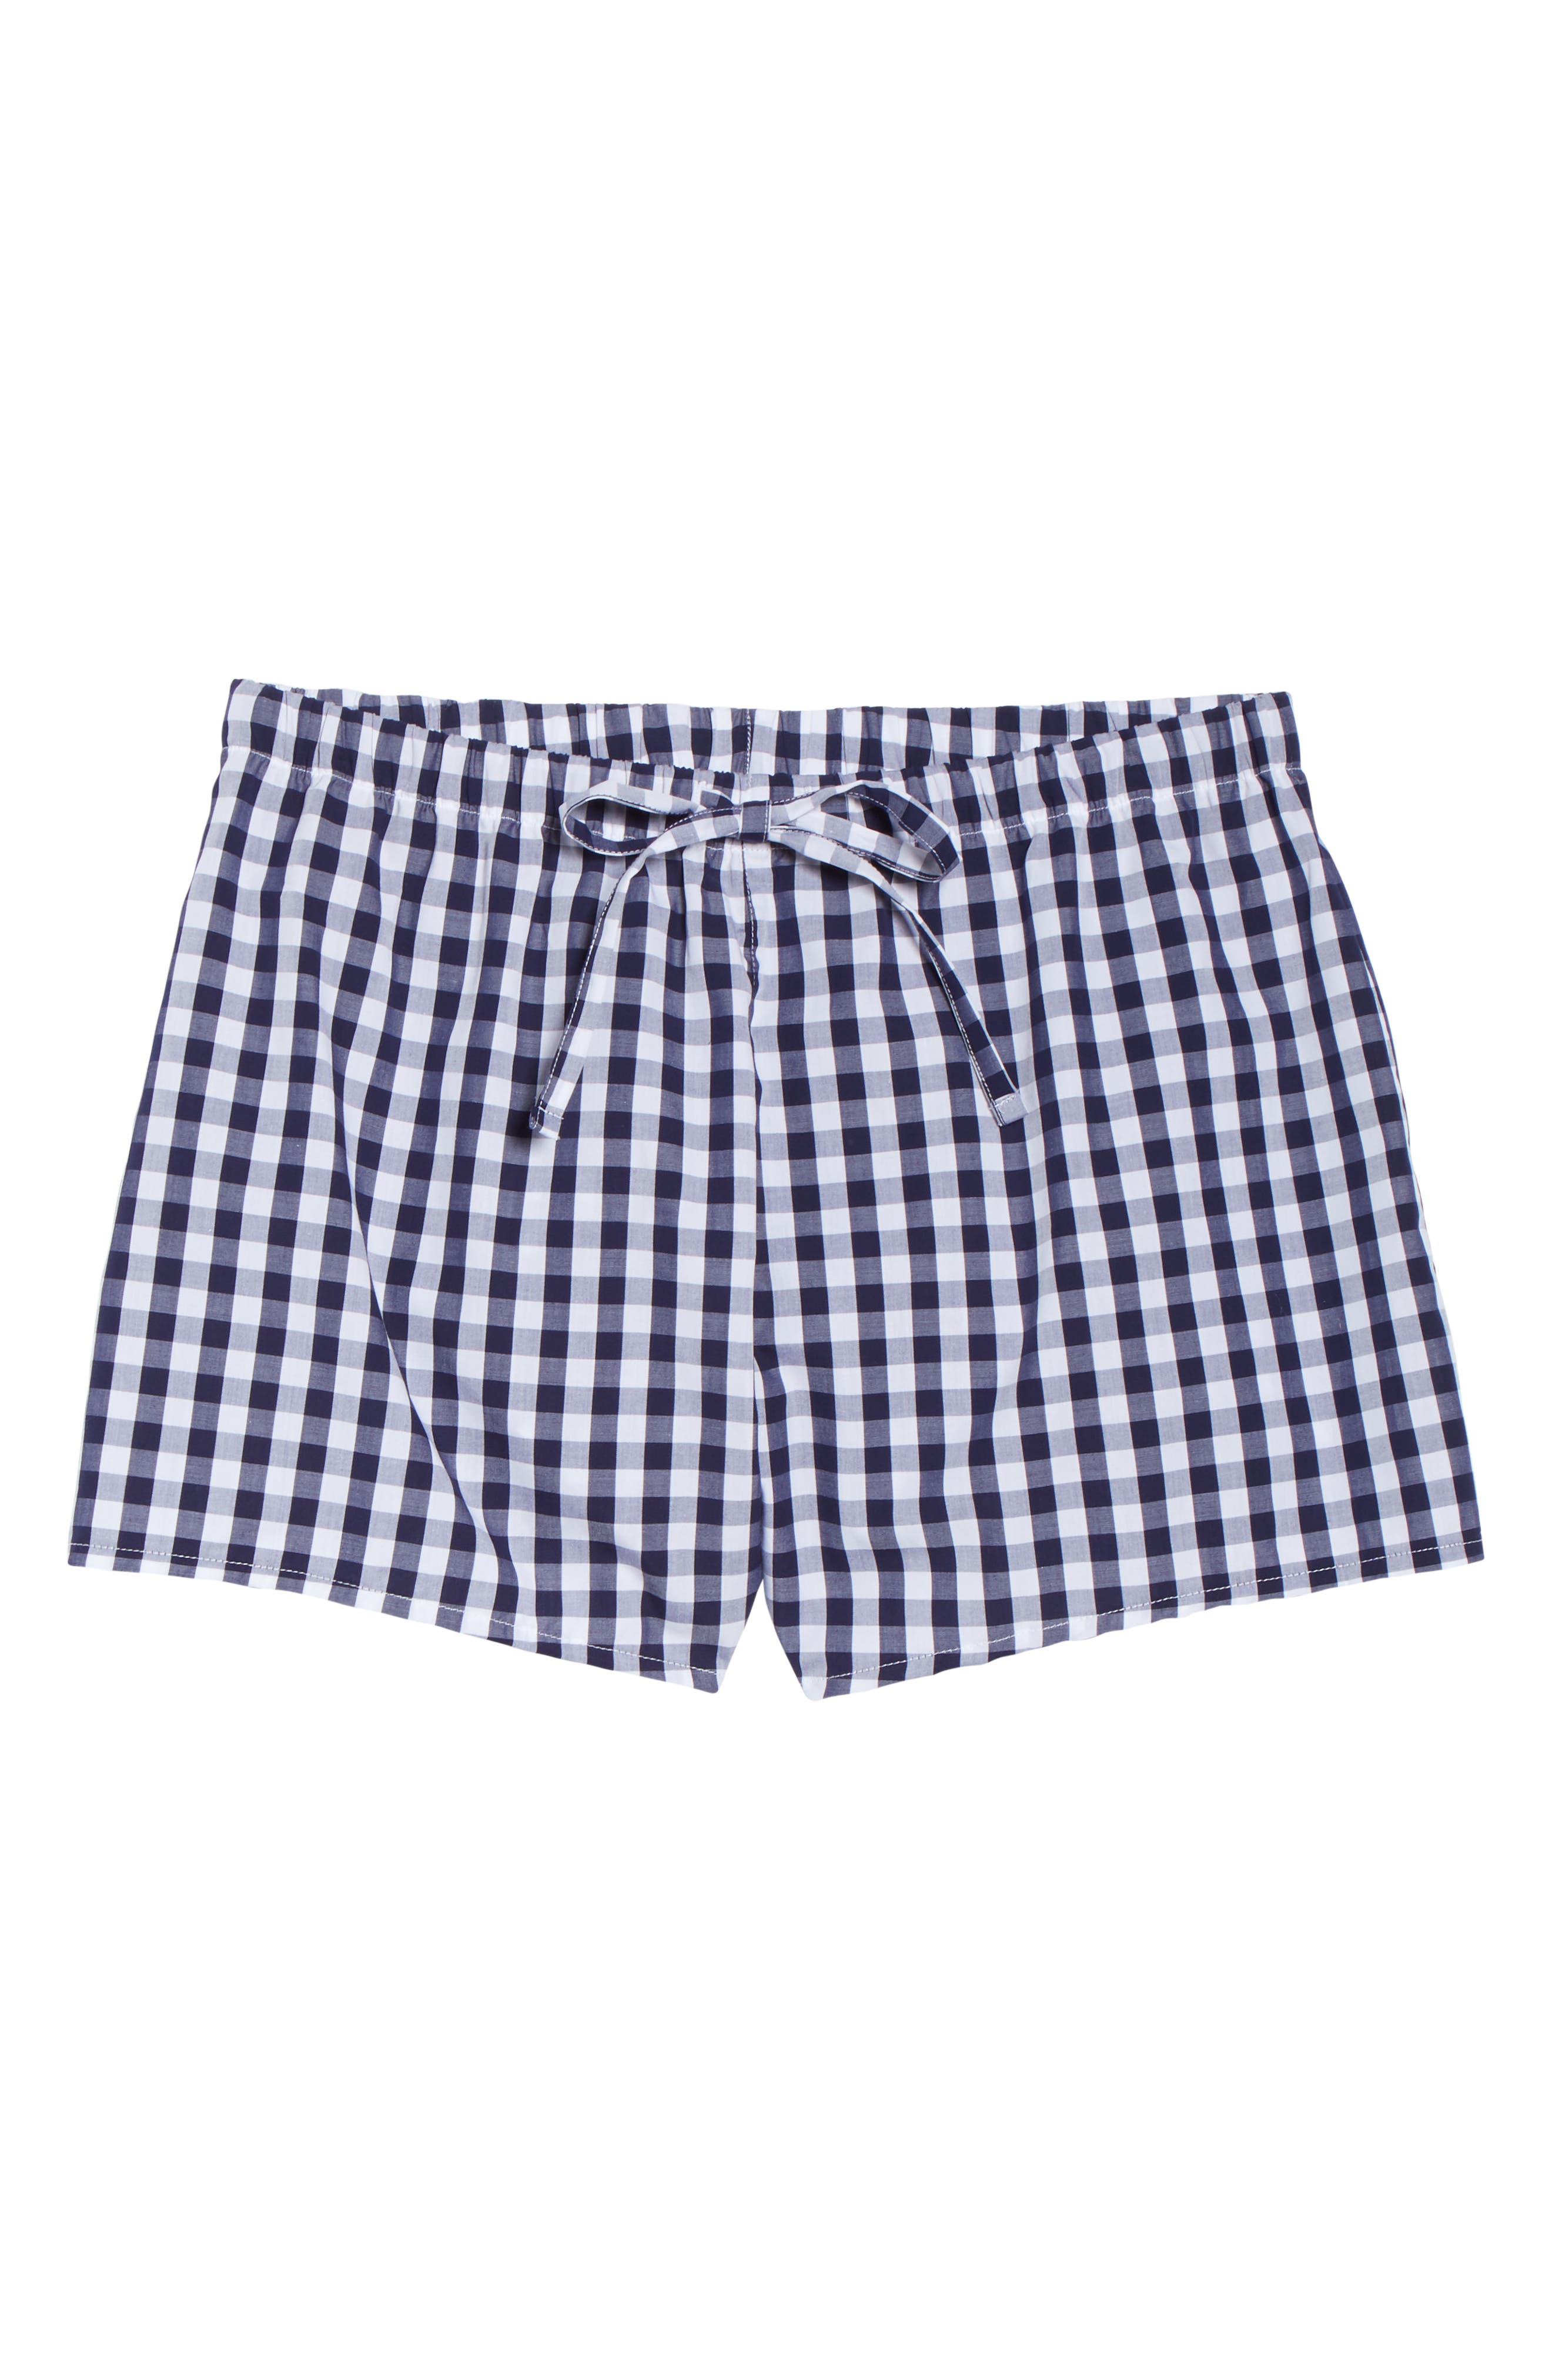 Paloma Women's Pajama Shorts,                         Main,                         color, LARGE GINGHAM BLUE